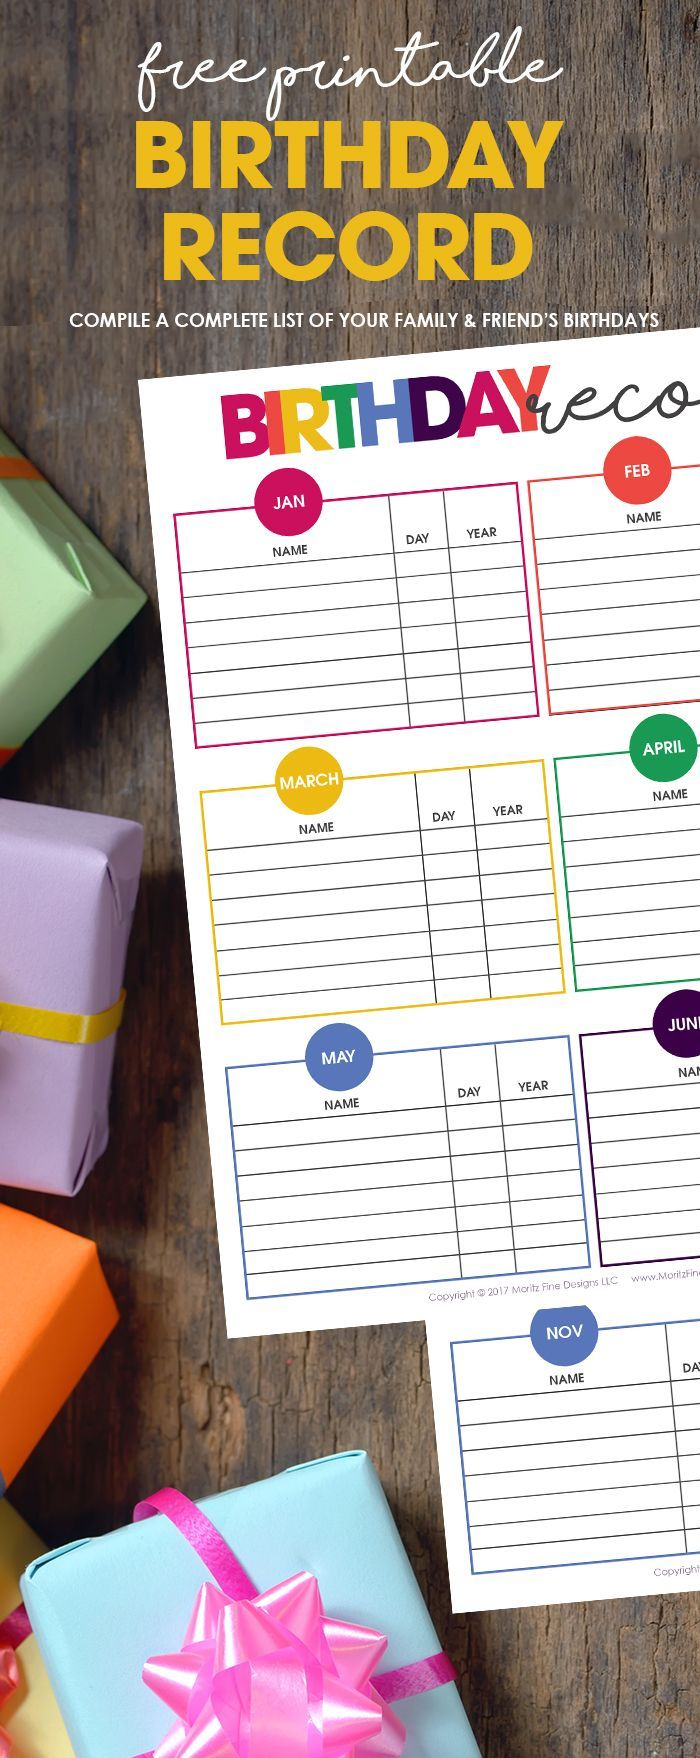 Never forget another birthday again. Use the free printable Birthday Record Keeper to compile a complete list of your family and friend's birthdays. #birthdayrecord #birthdayorganizer #freeprintable #birthdayideas